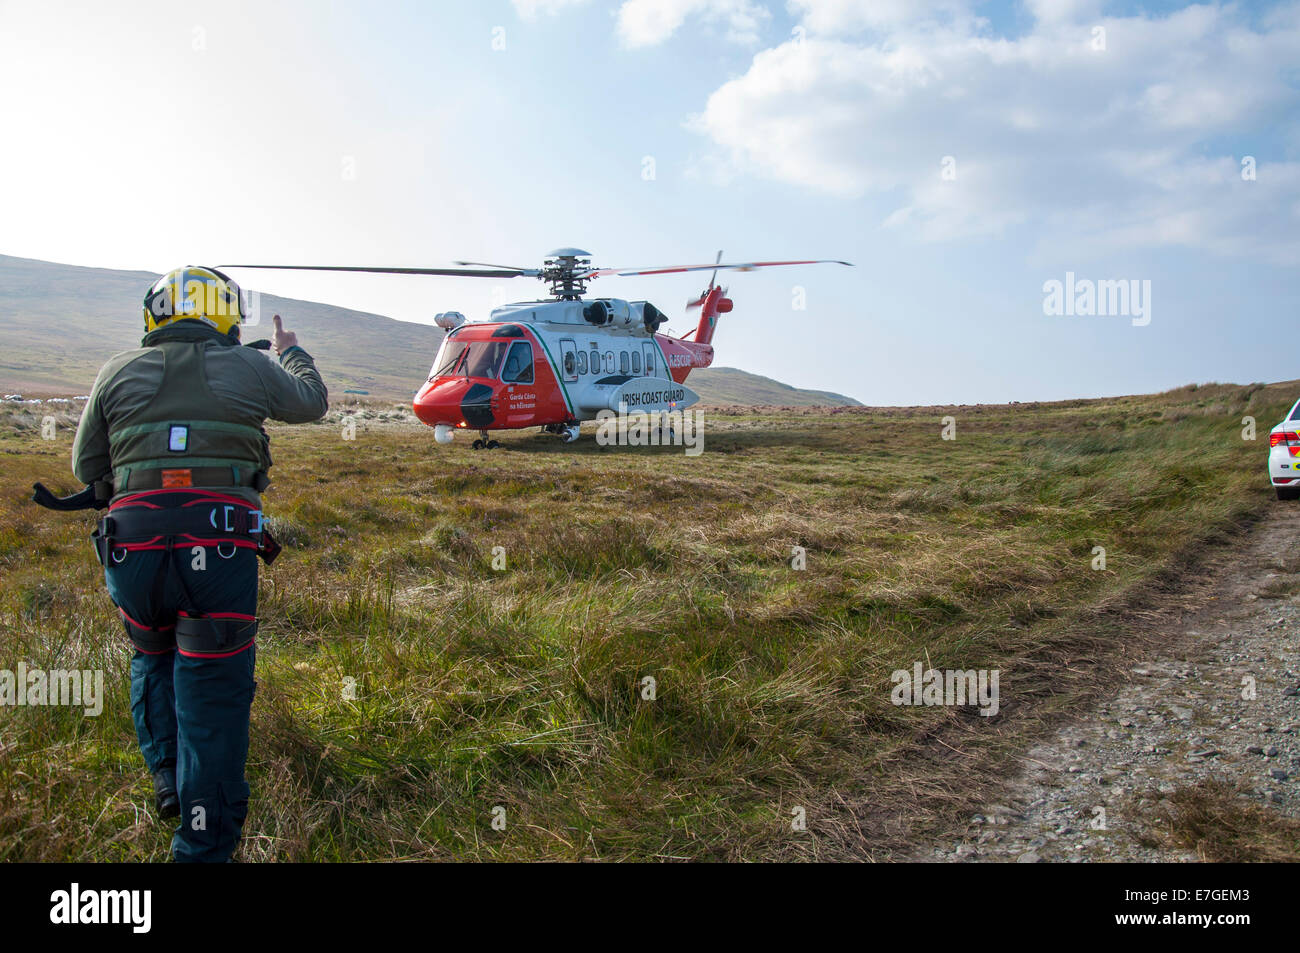 Irish Coast Guard IRCG  Garda Cósta na hÉireann Sikorsky helicopter lands on the bog during a medical rescue in Stock Photo